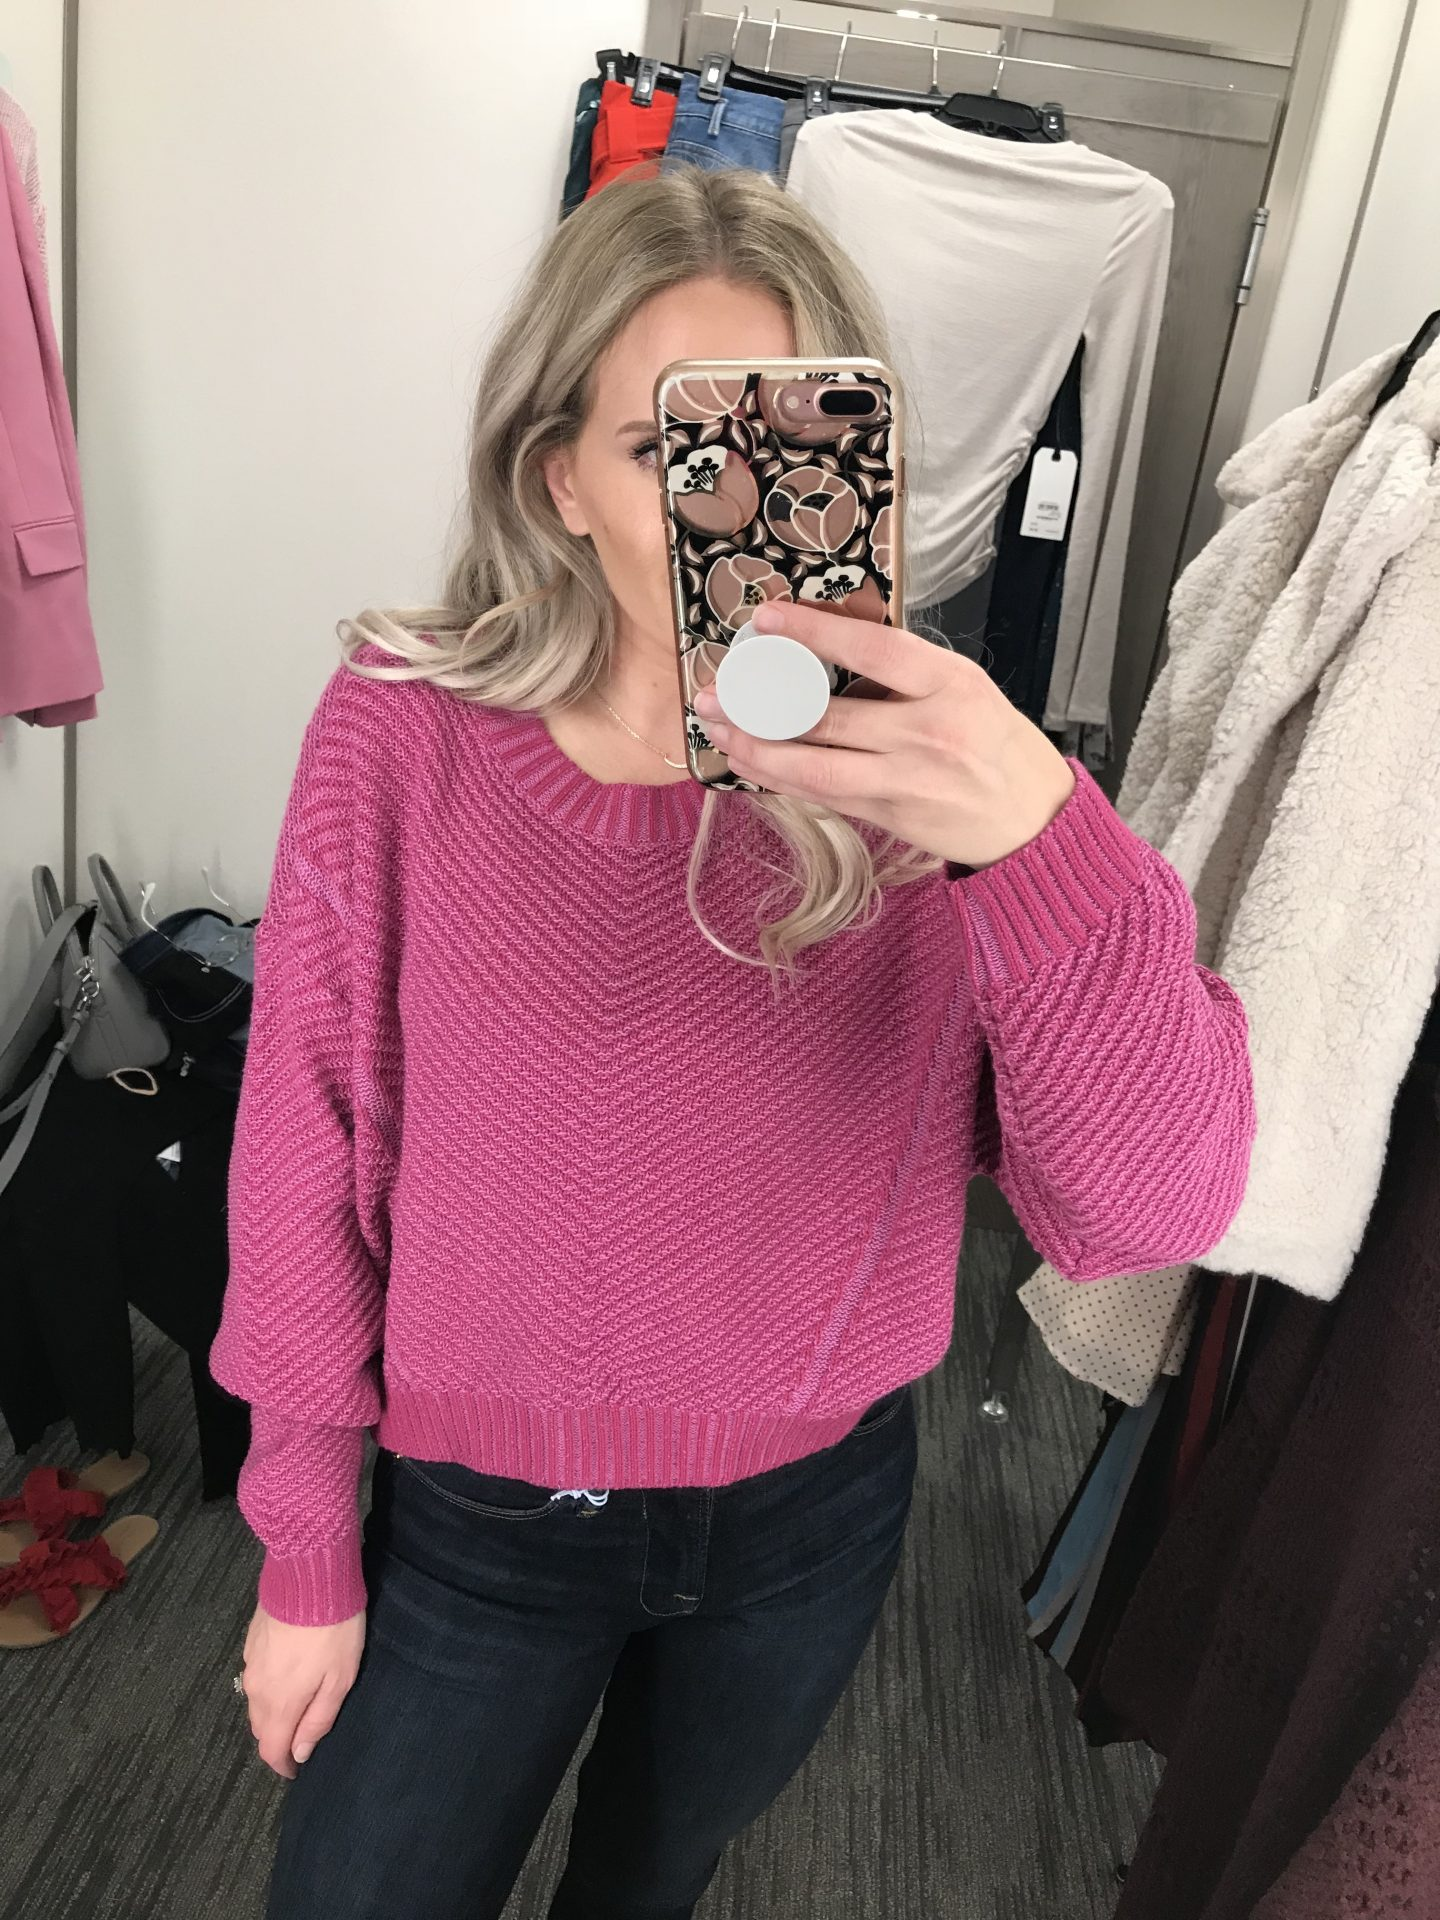 Nordstrom Anniversary Sale: Dressing Room Try On featured by Orange County fashion blogger, Dress Me Blonde